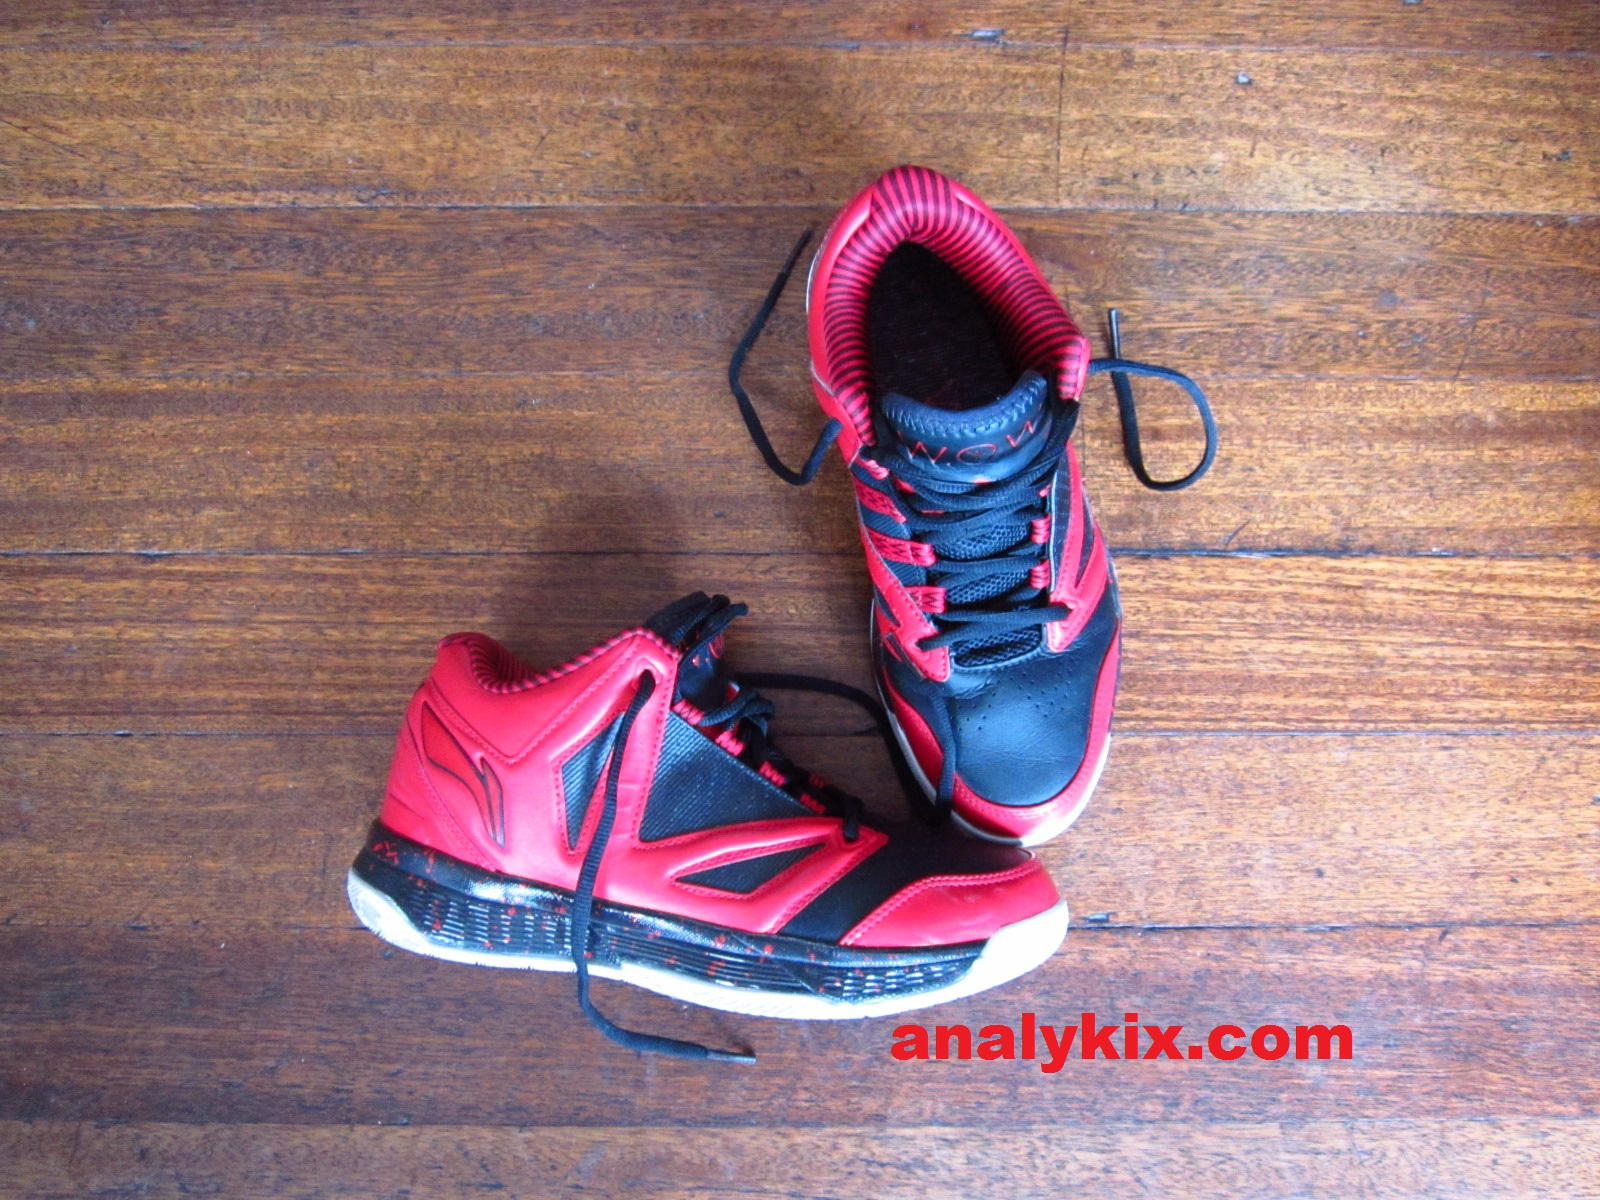 new product 6e4c7 2905c Performance Review  Li Ning Way of Wade All City Encore 2   Analykix